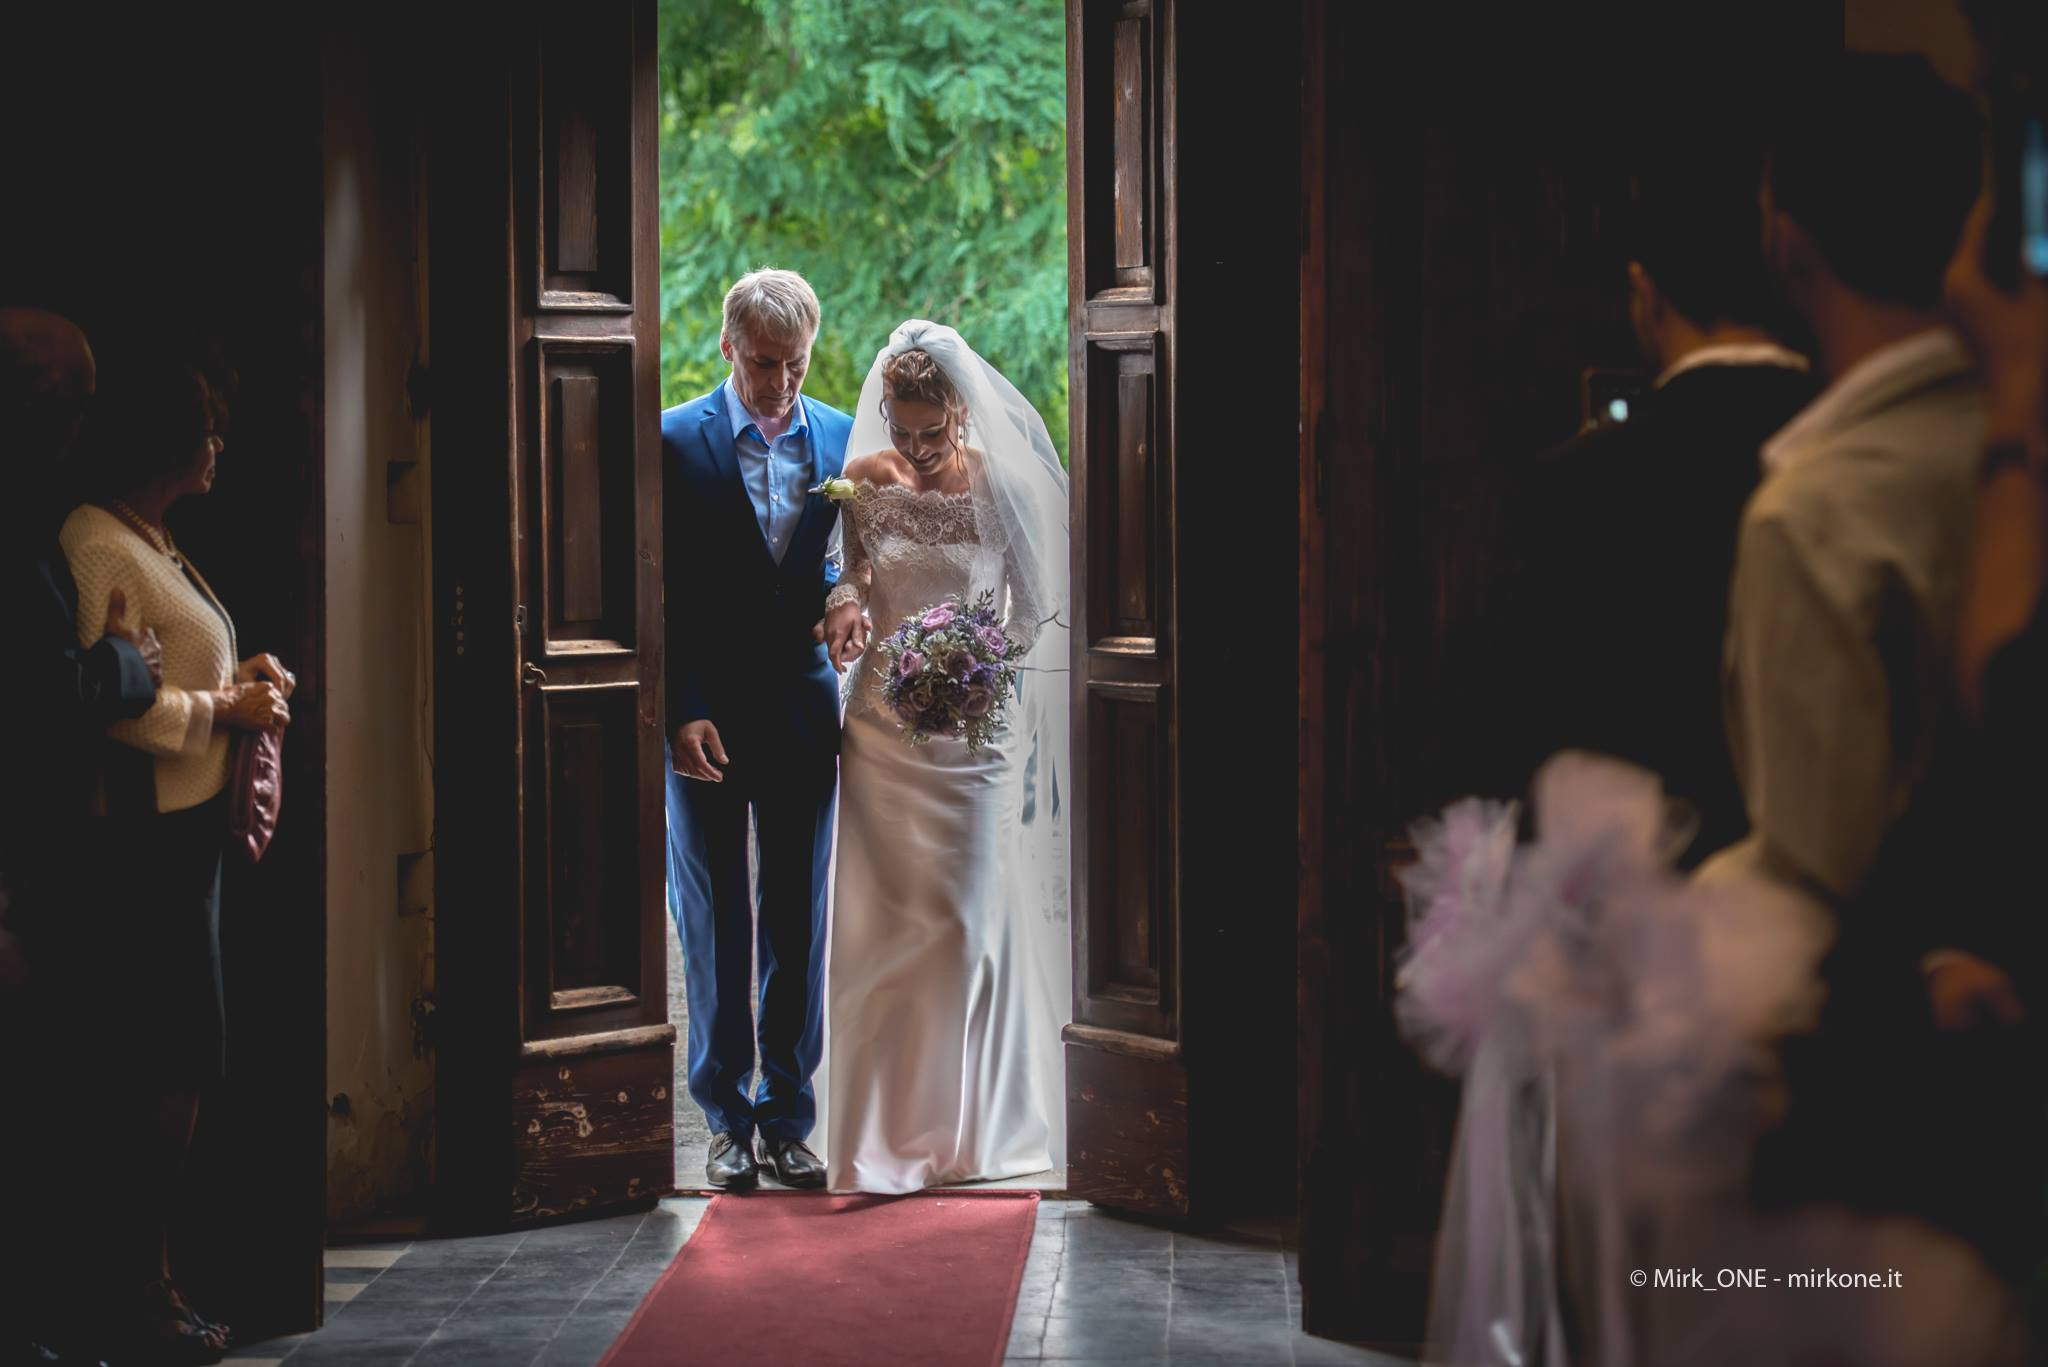 http://lnx.mirkone.it/wp-content/uploads/2015/07/mirk_ONE-fotografo-matrimonio-00125.jpg